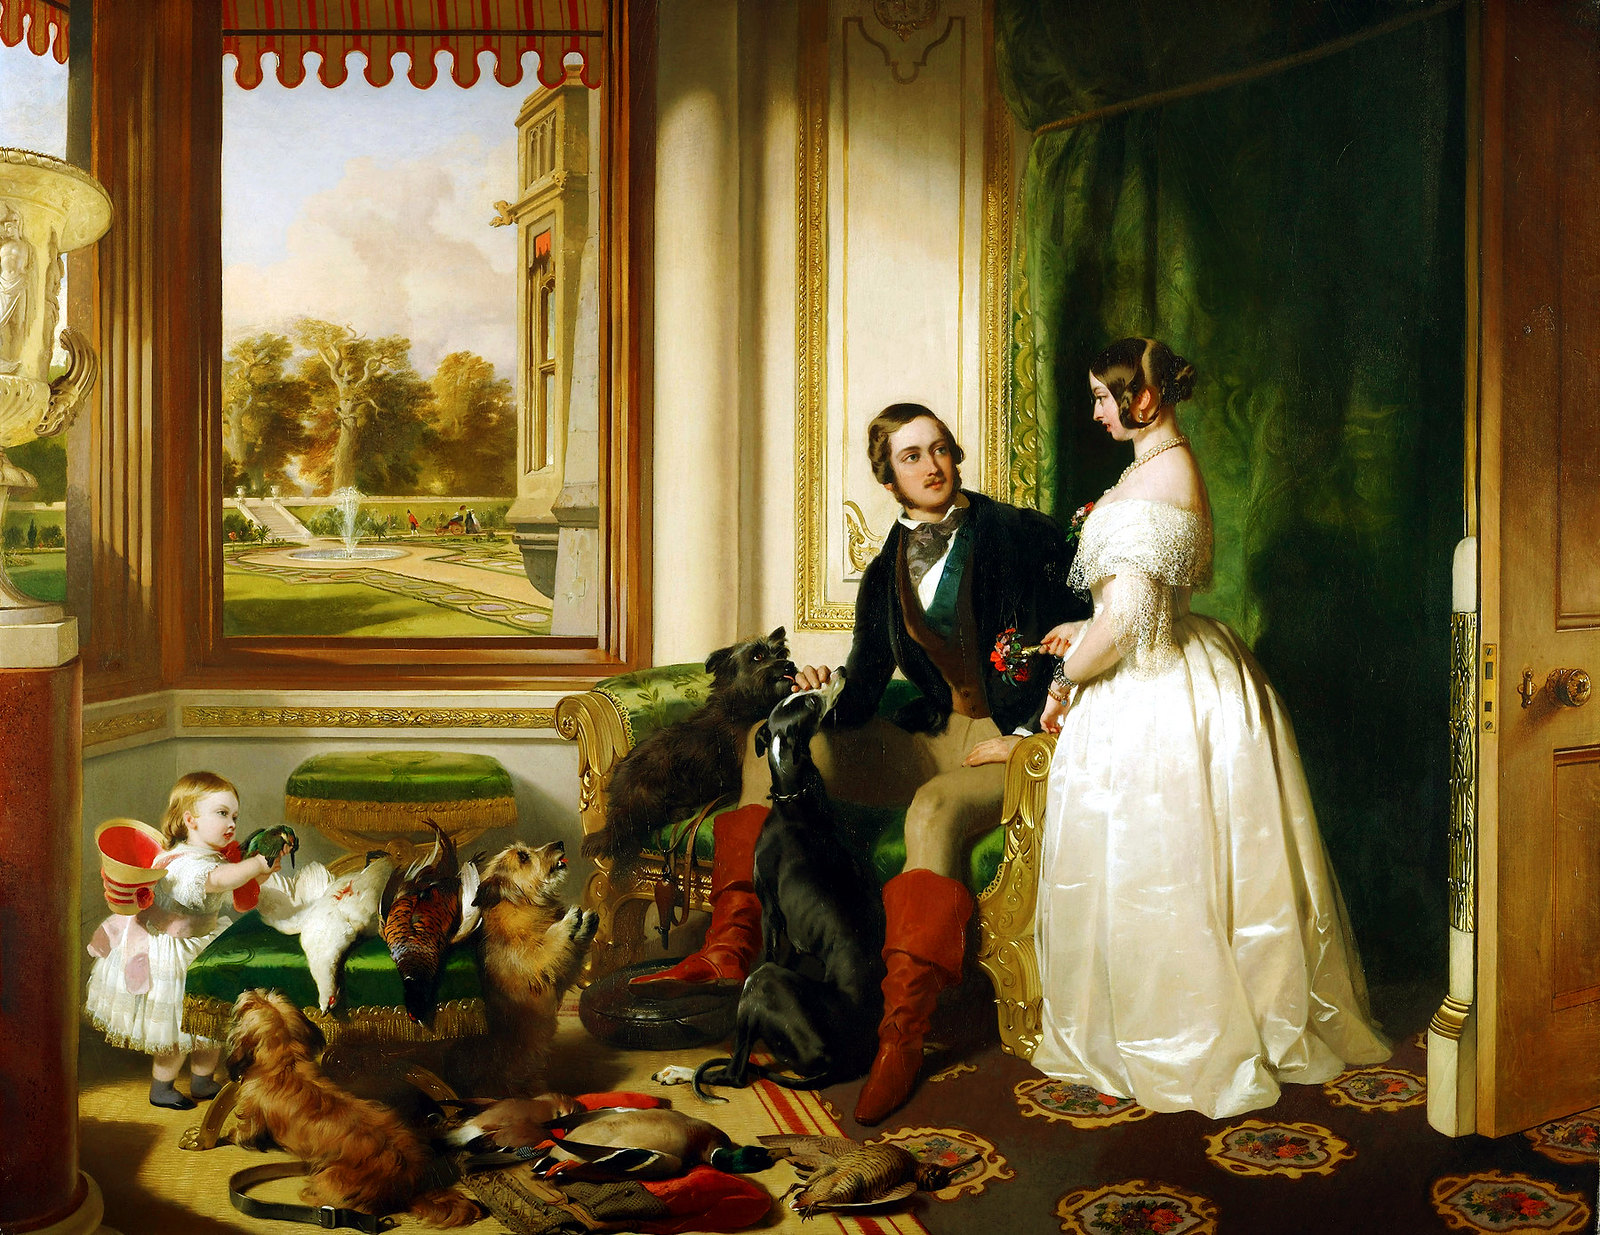 Queen Victoria and Prince Albert at home at Windsor Castle byE dwin Henry Landseer, 1843